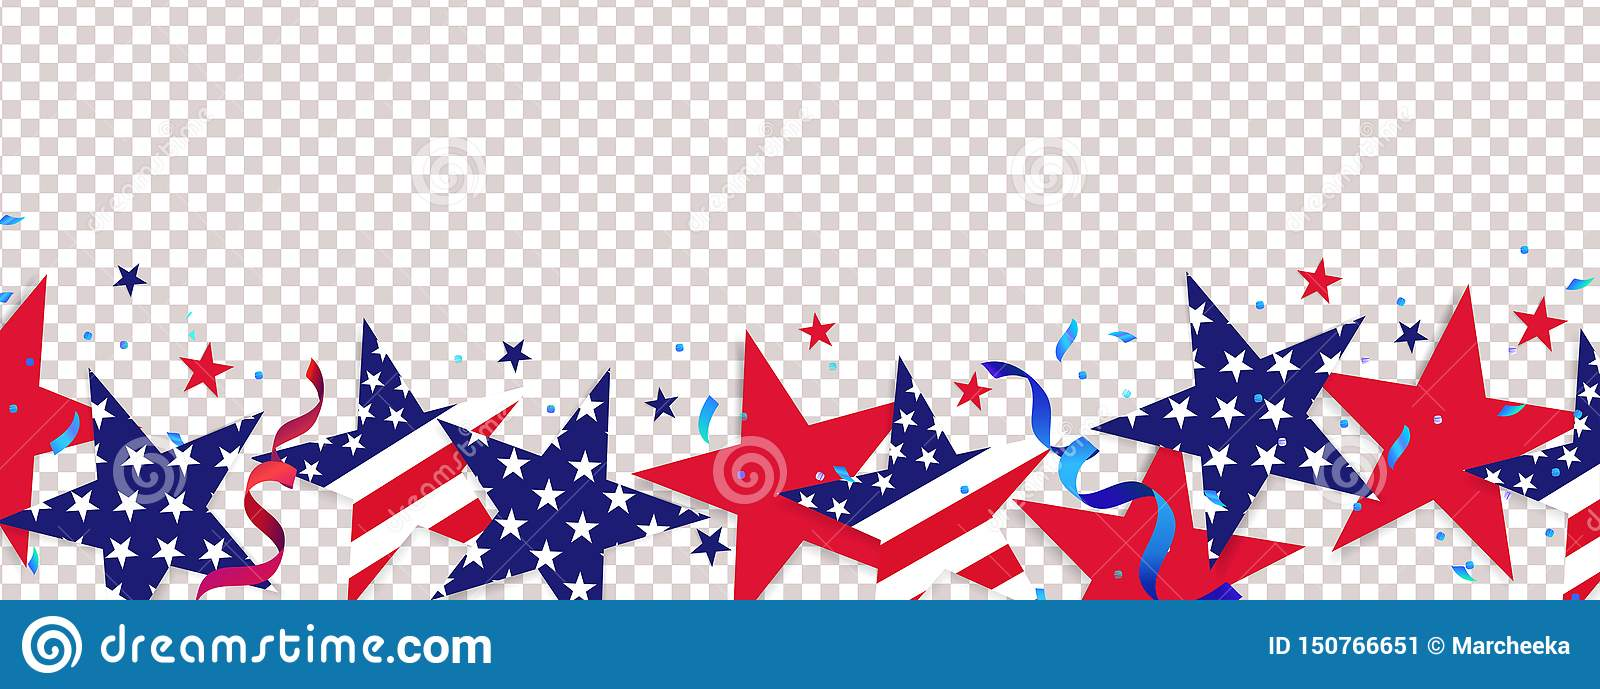 Fourth of July background. 4th of July holiday long horizontal border